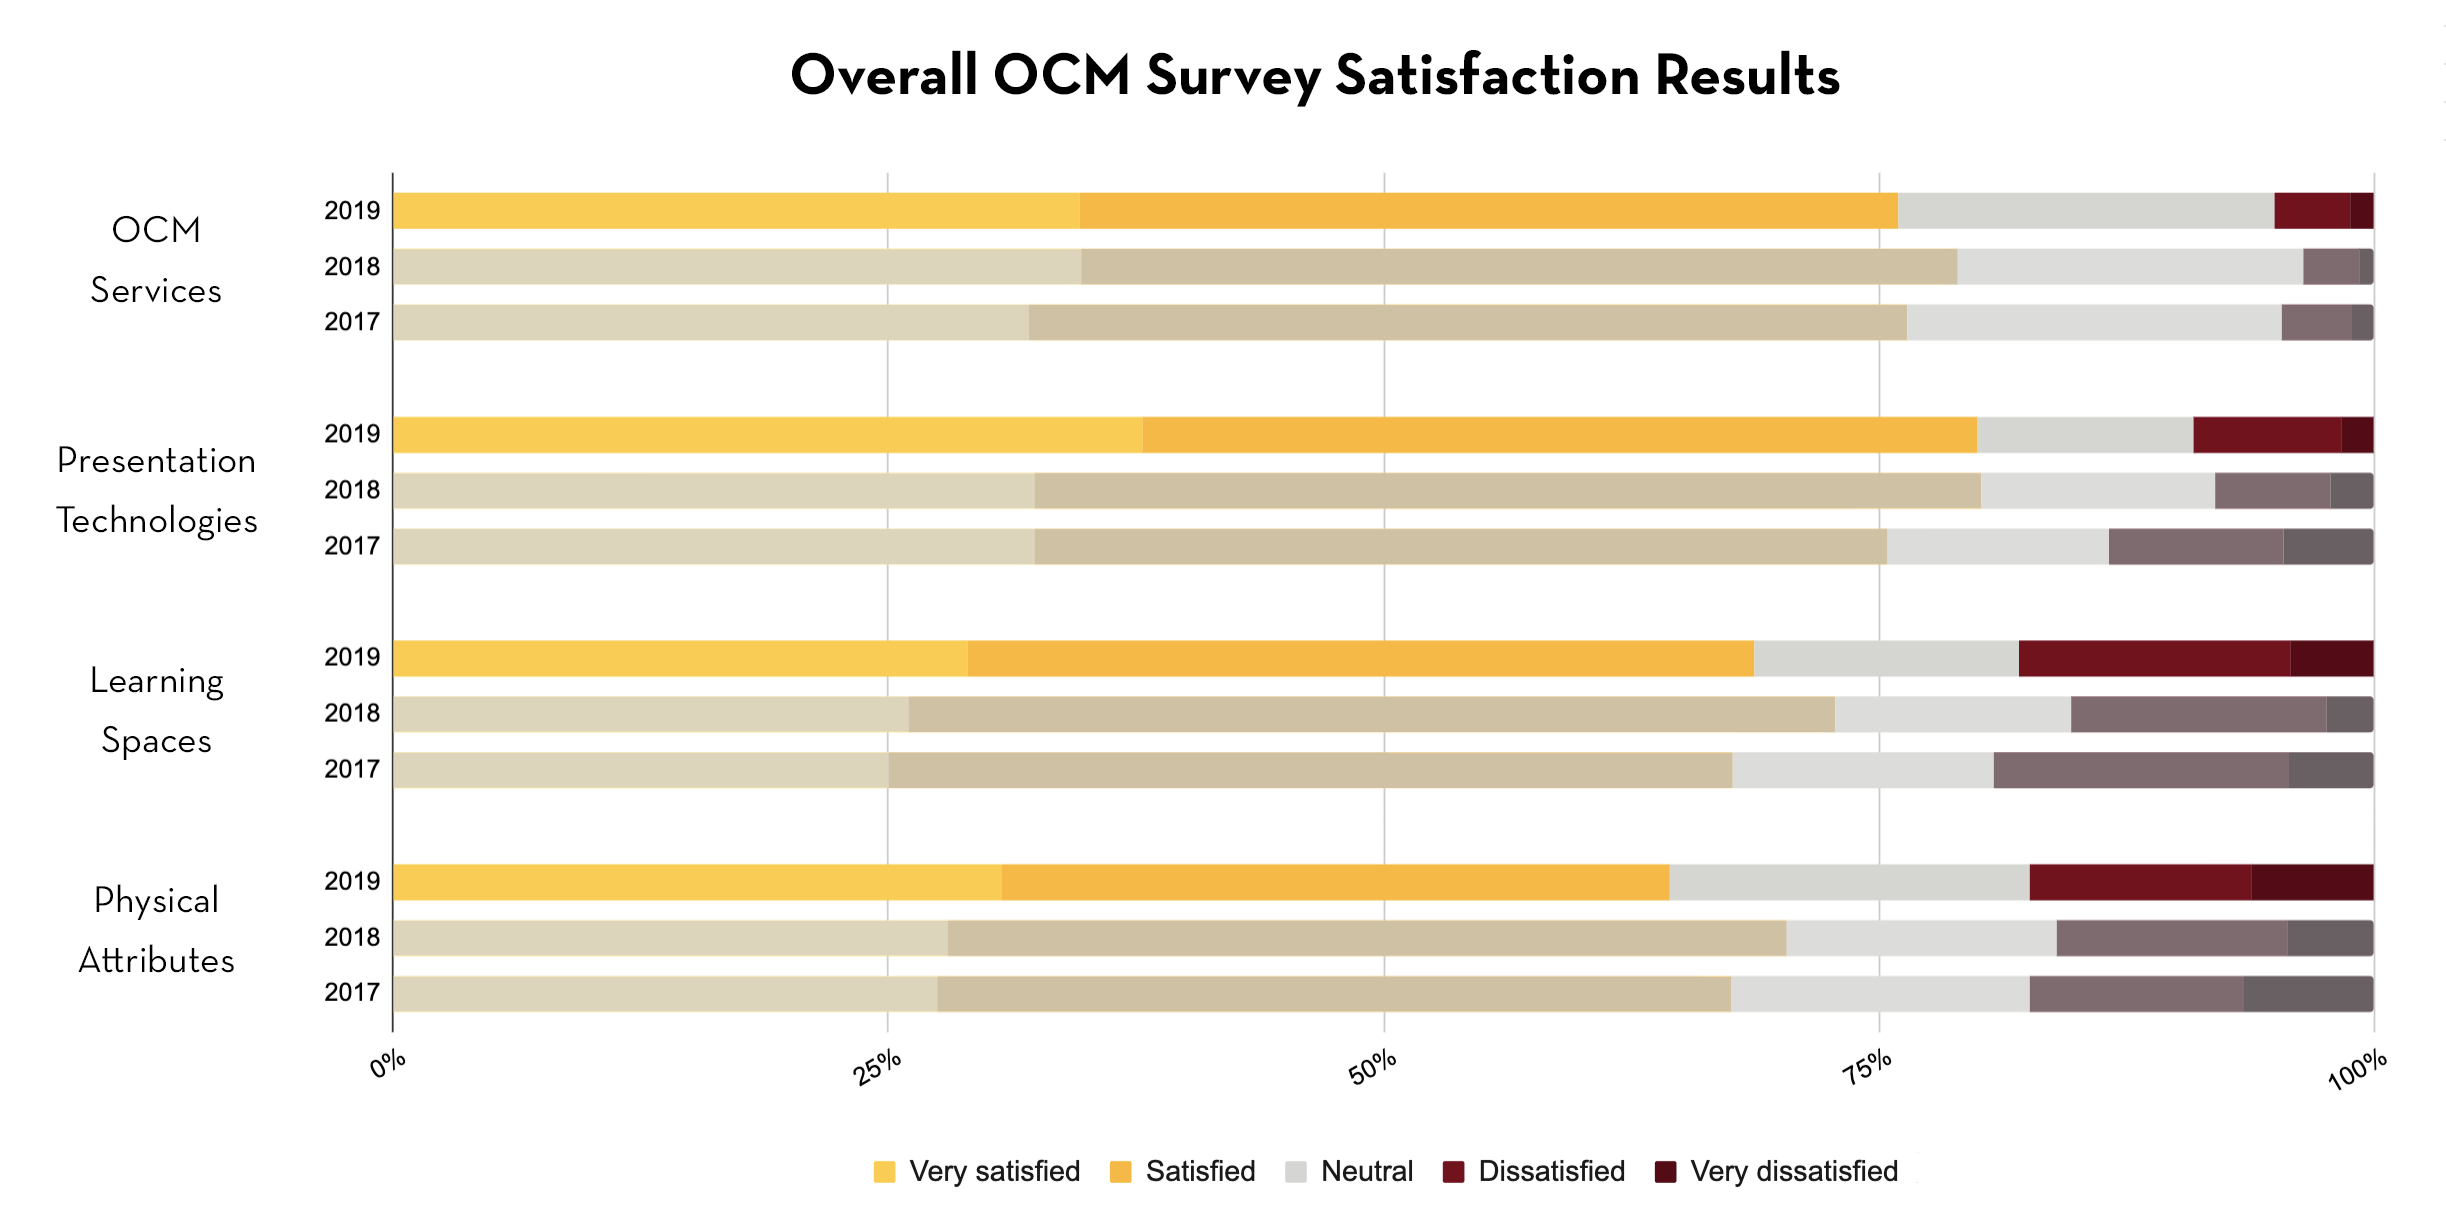 Overall OCM Survey Satisfaction Results between 2017 and 2019